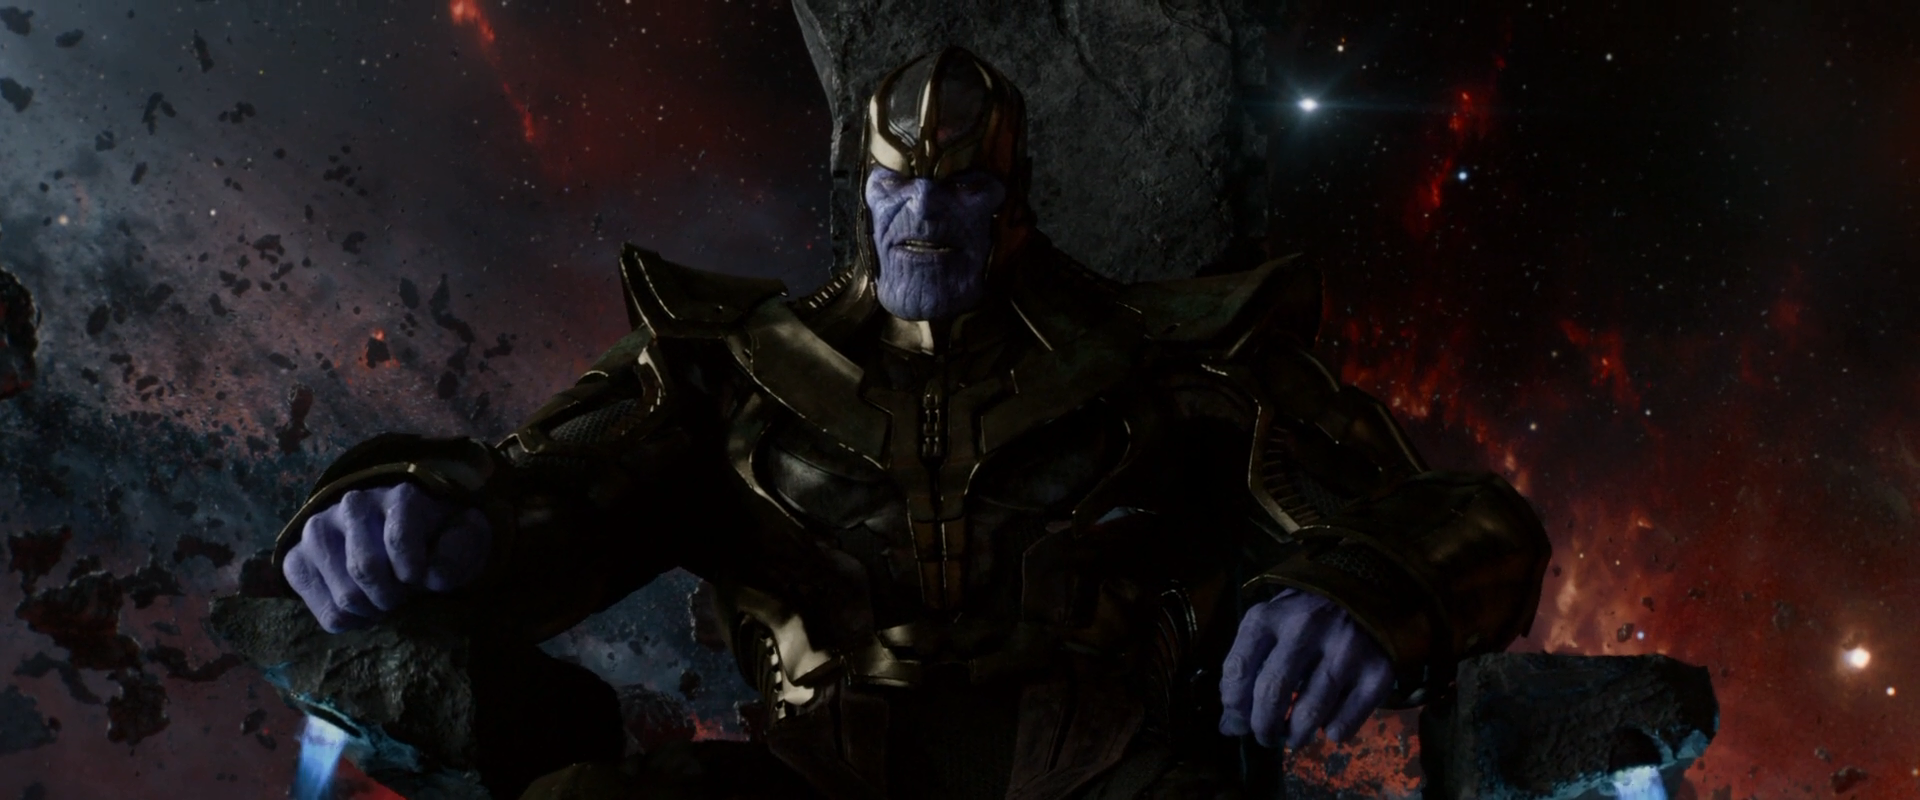 Thanos Backgrounds on Wallpapers Vista